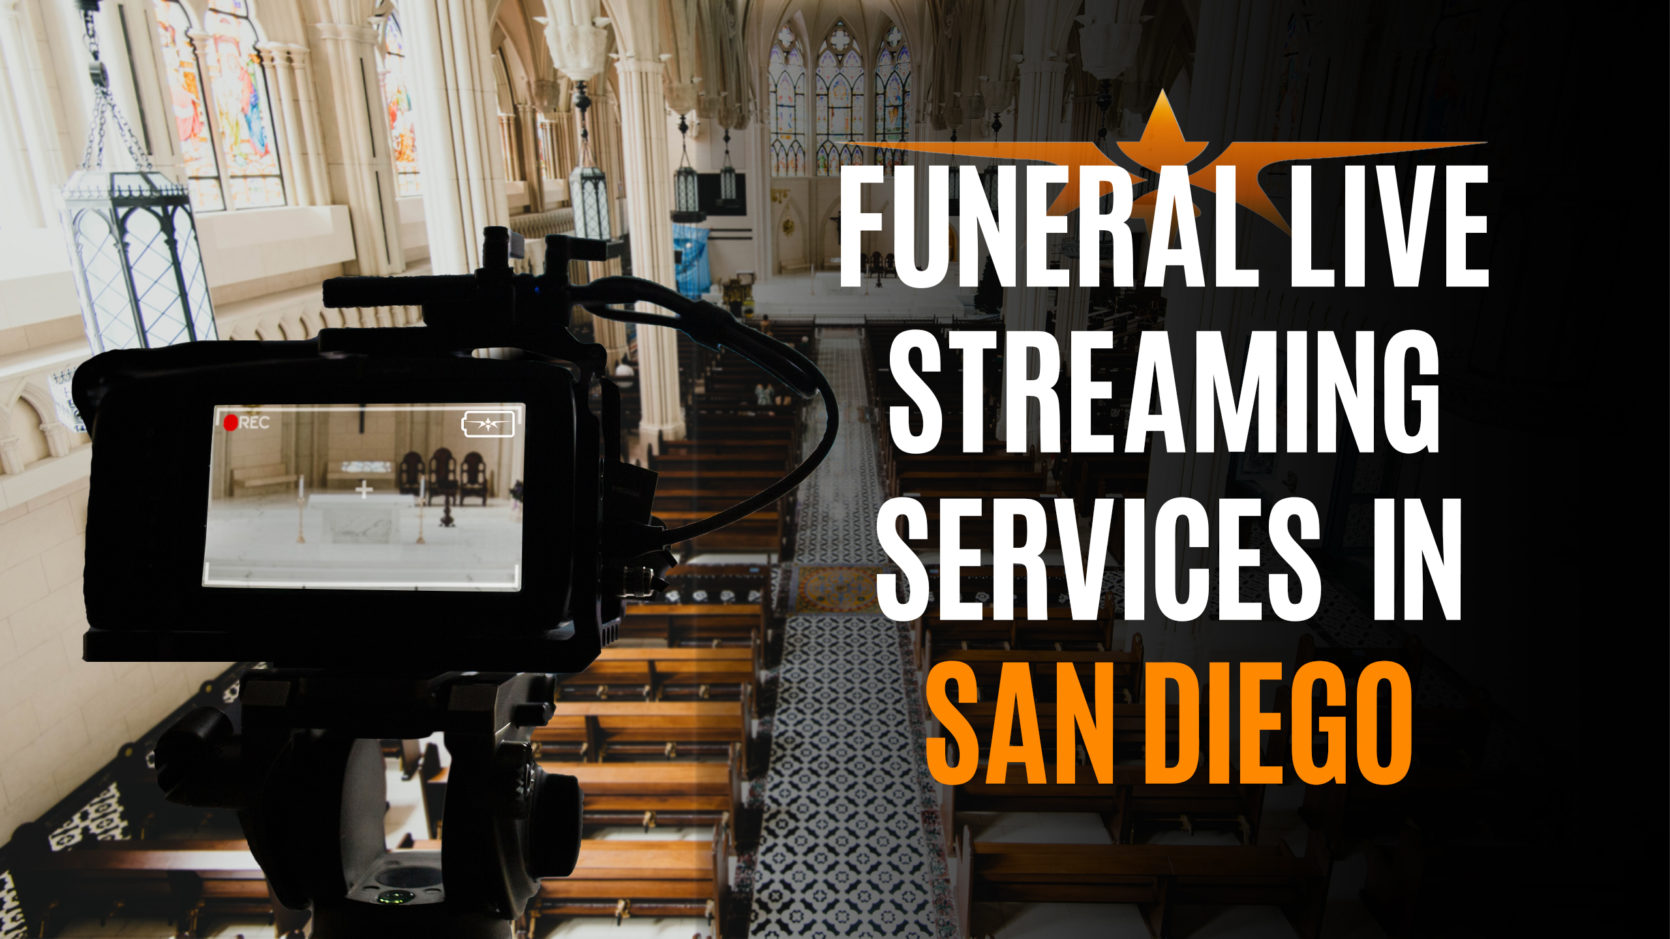 Funeral Live Streaming Services in San Diego